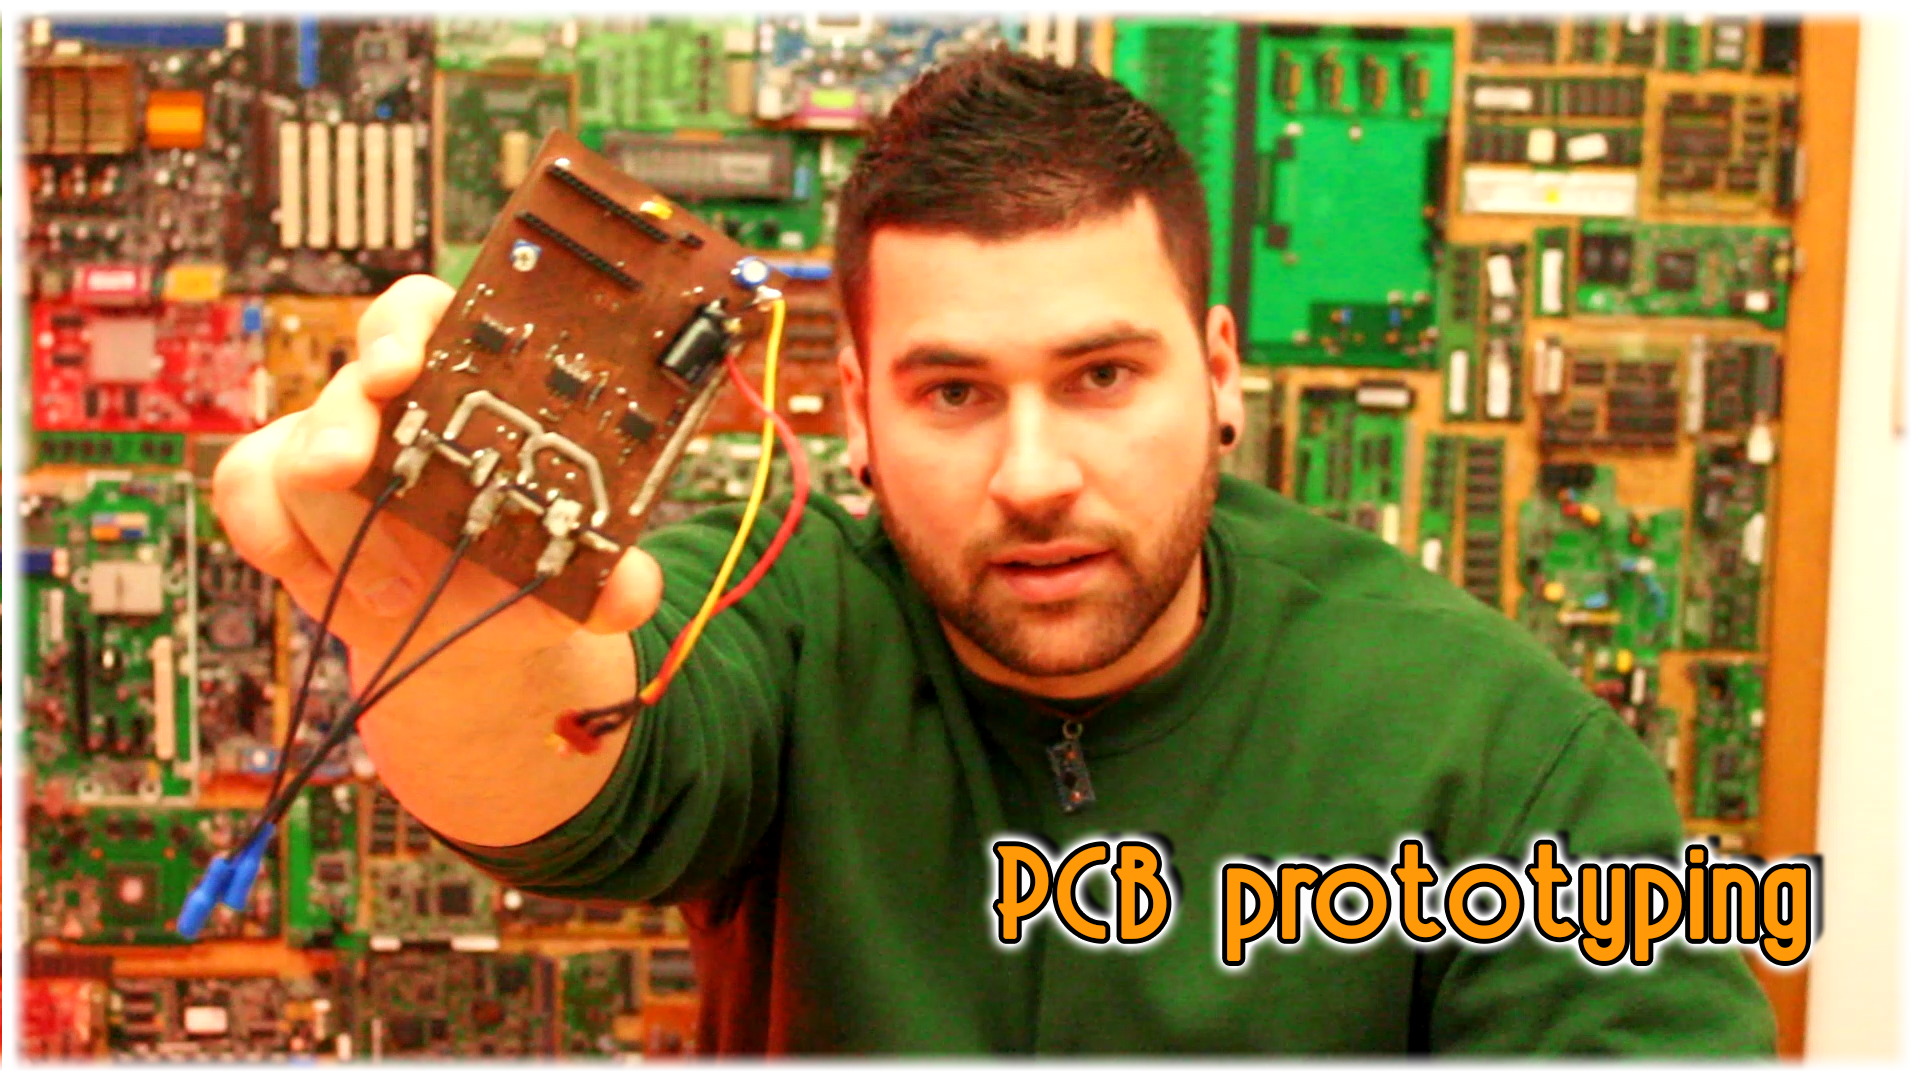 Let's make some PCBs